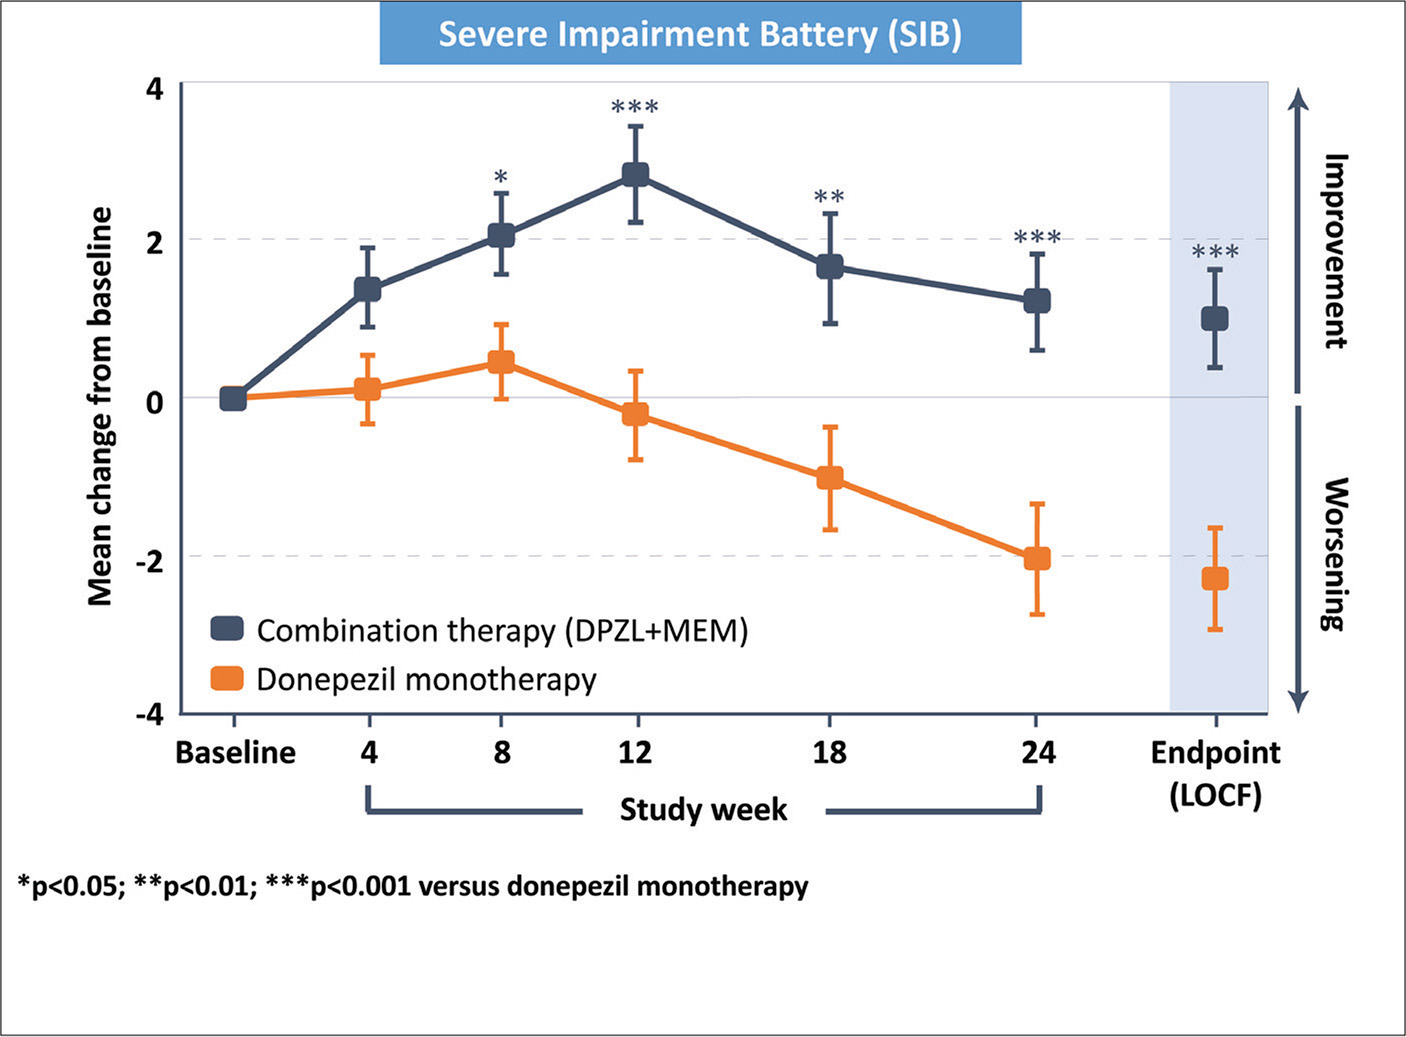 Clinical efficacy of donepezil-memantine (DPZL+MEM) add-on combination treatment to produce cognitive enhancement over 6 months, compared to donepezil-placebo (donepezil monotherapy) treatment. The severe impairment battery is a 100-point, clinician administered, clinical trial scale that measures cognition in people with moderate and severe dementia (higher scores reflect better performance). Observed case and last observer carried forward analysis both support improved cognitive performance at trial end-point (24 weeks) in favor of the DPZL+MEM group relative to the donepezil monotherapy group. Data from Tariot et al.88